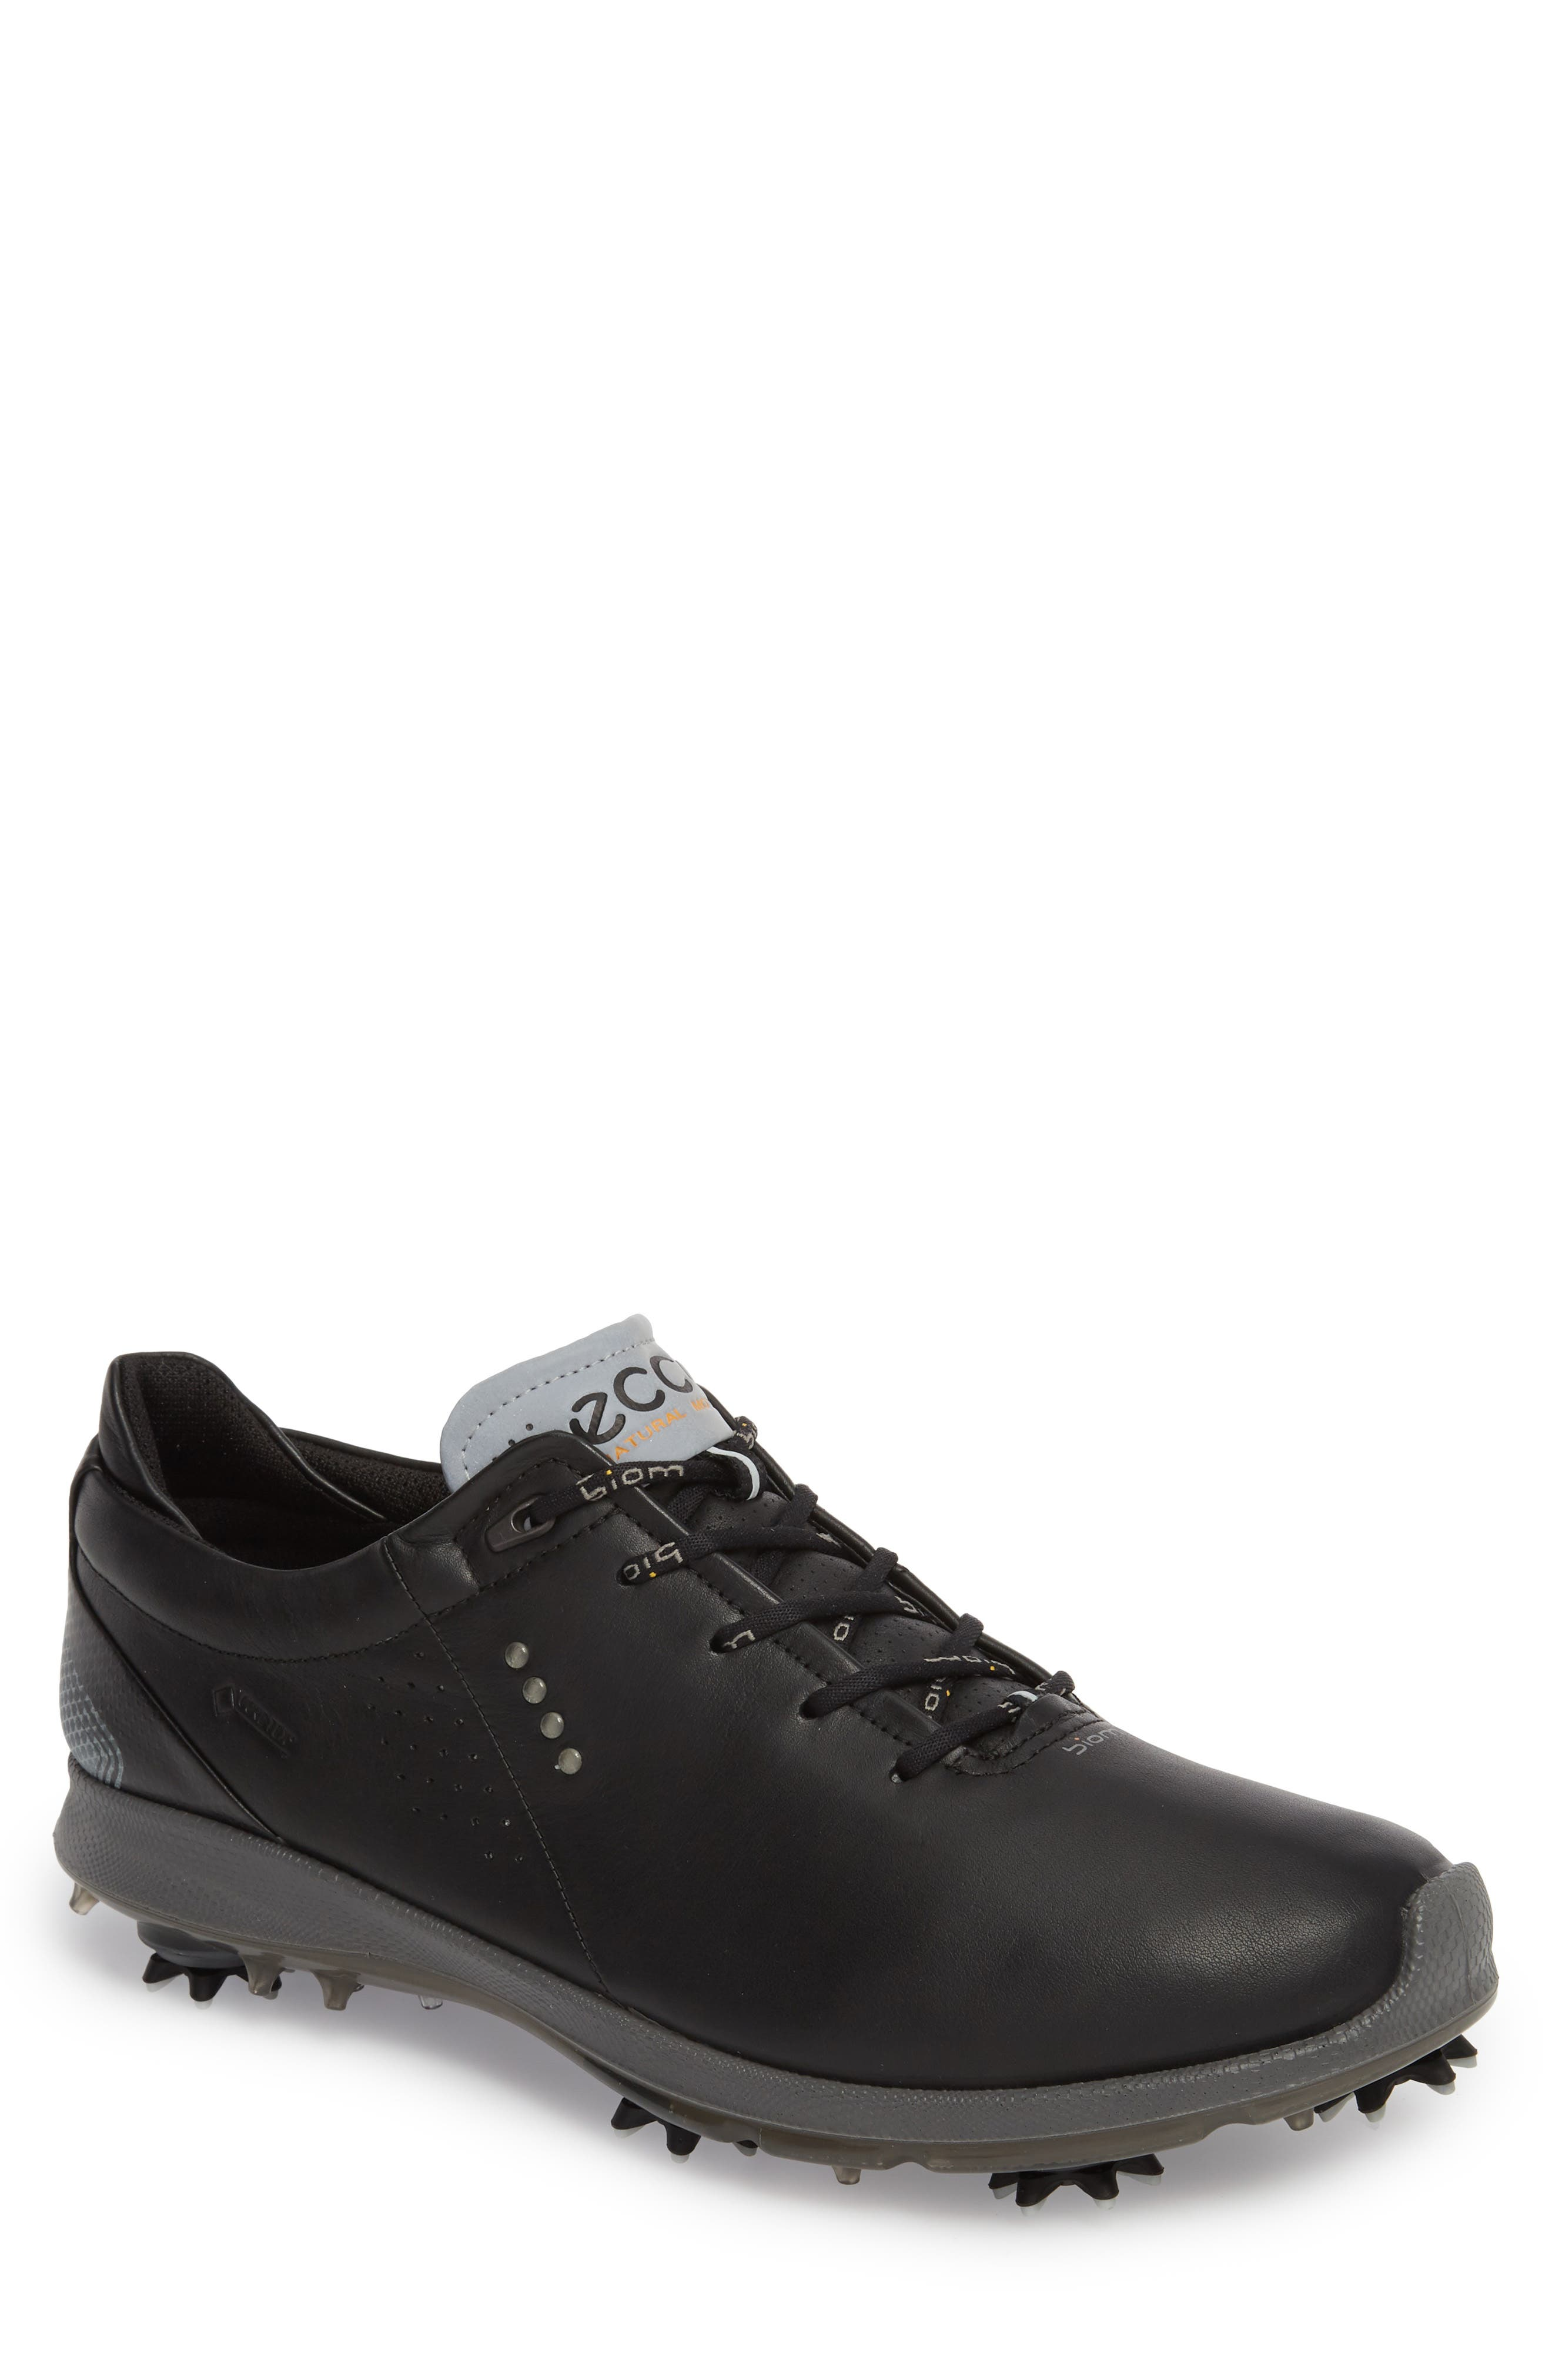 BIOM G 2 Free Gore-Tex<sup>®</sup> Golf Shoe,                         Main,                         color, Black Leather